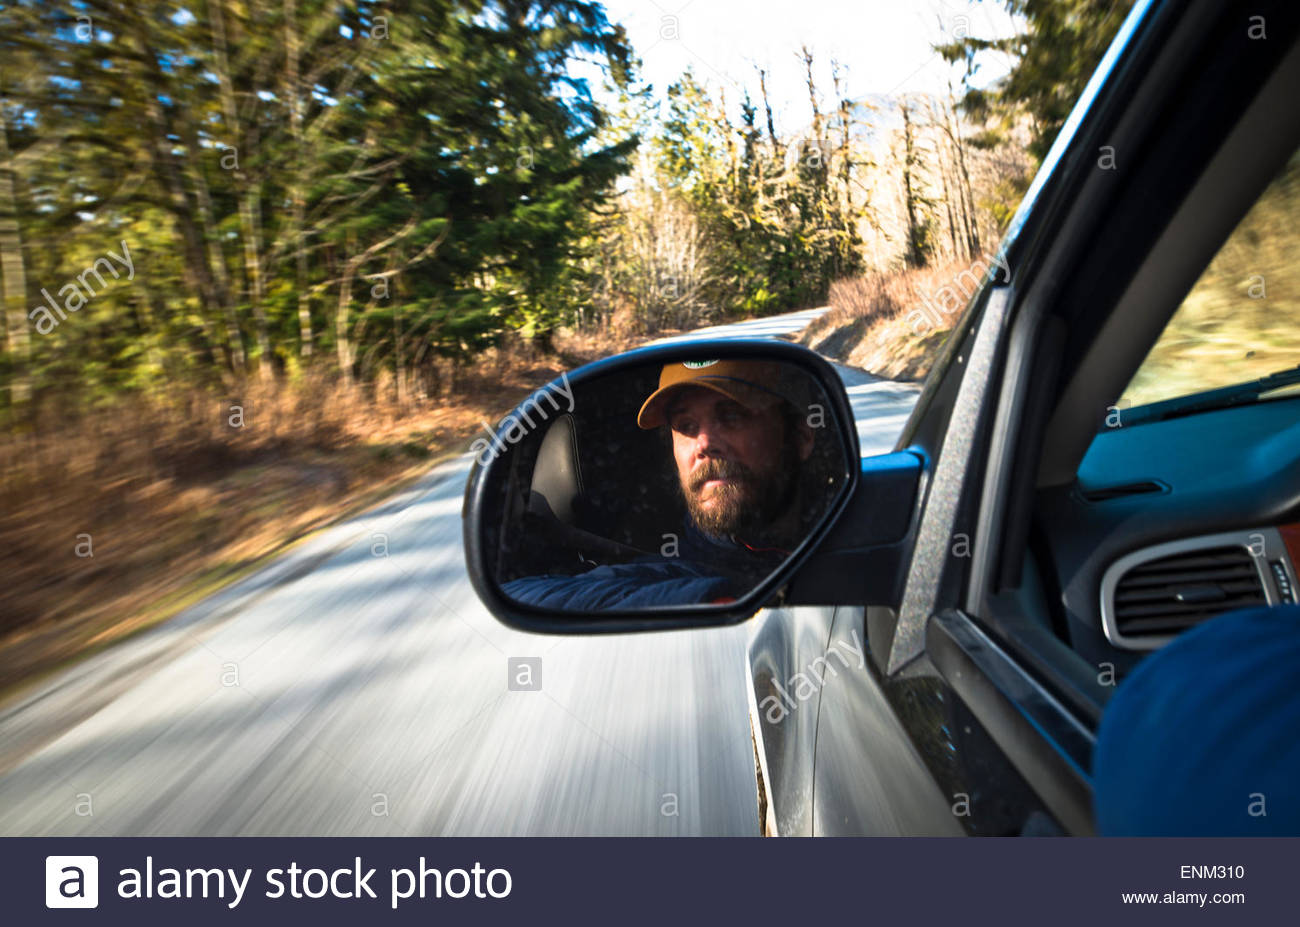 A mans face reflecting in his rear view mirror while driving. - Stock Image